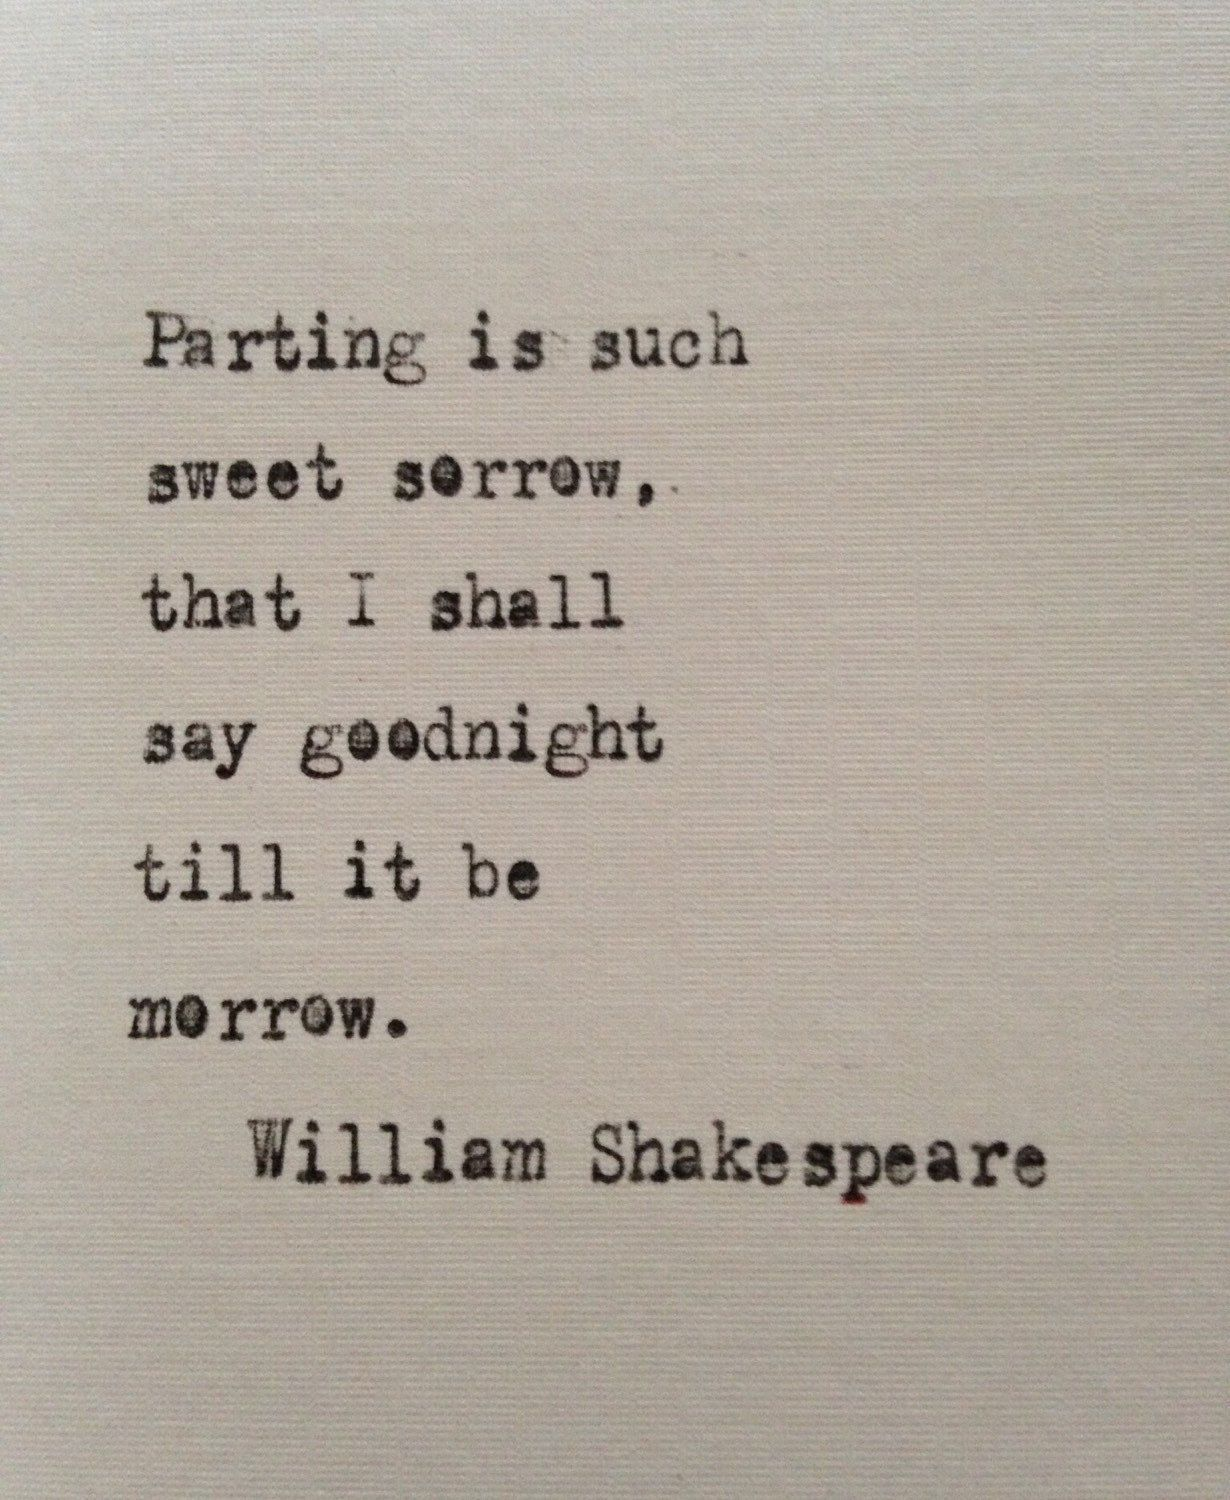 William Shakespeare Quotes William Shakespeare Love Quote Romeo And Juliet Hand Typed On